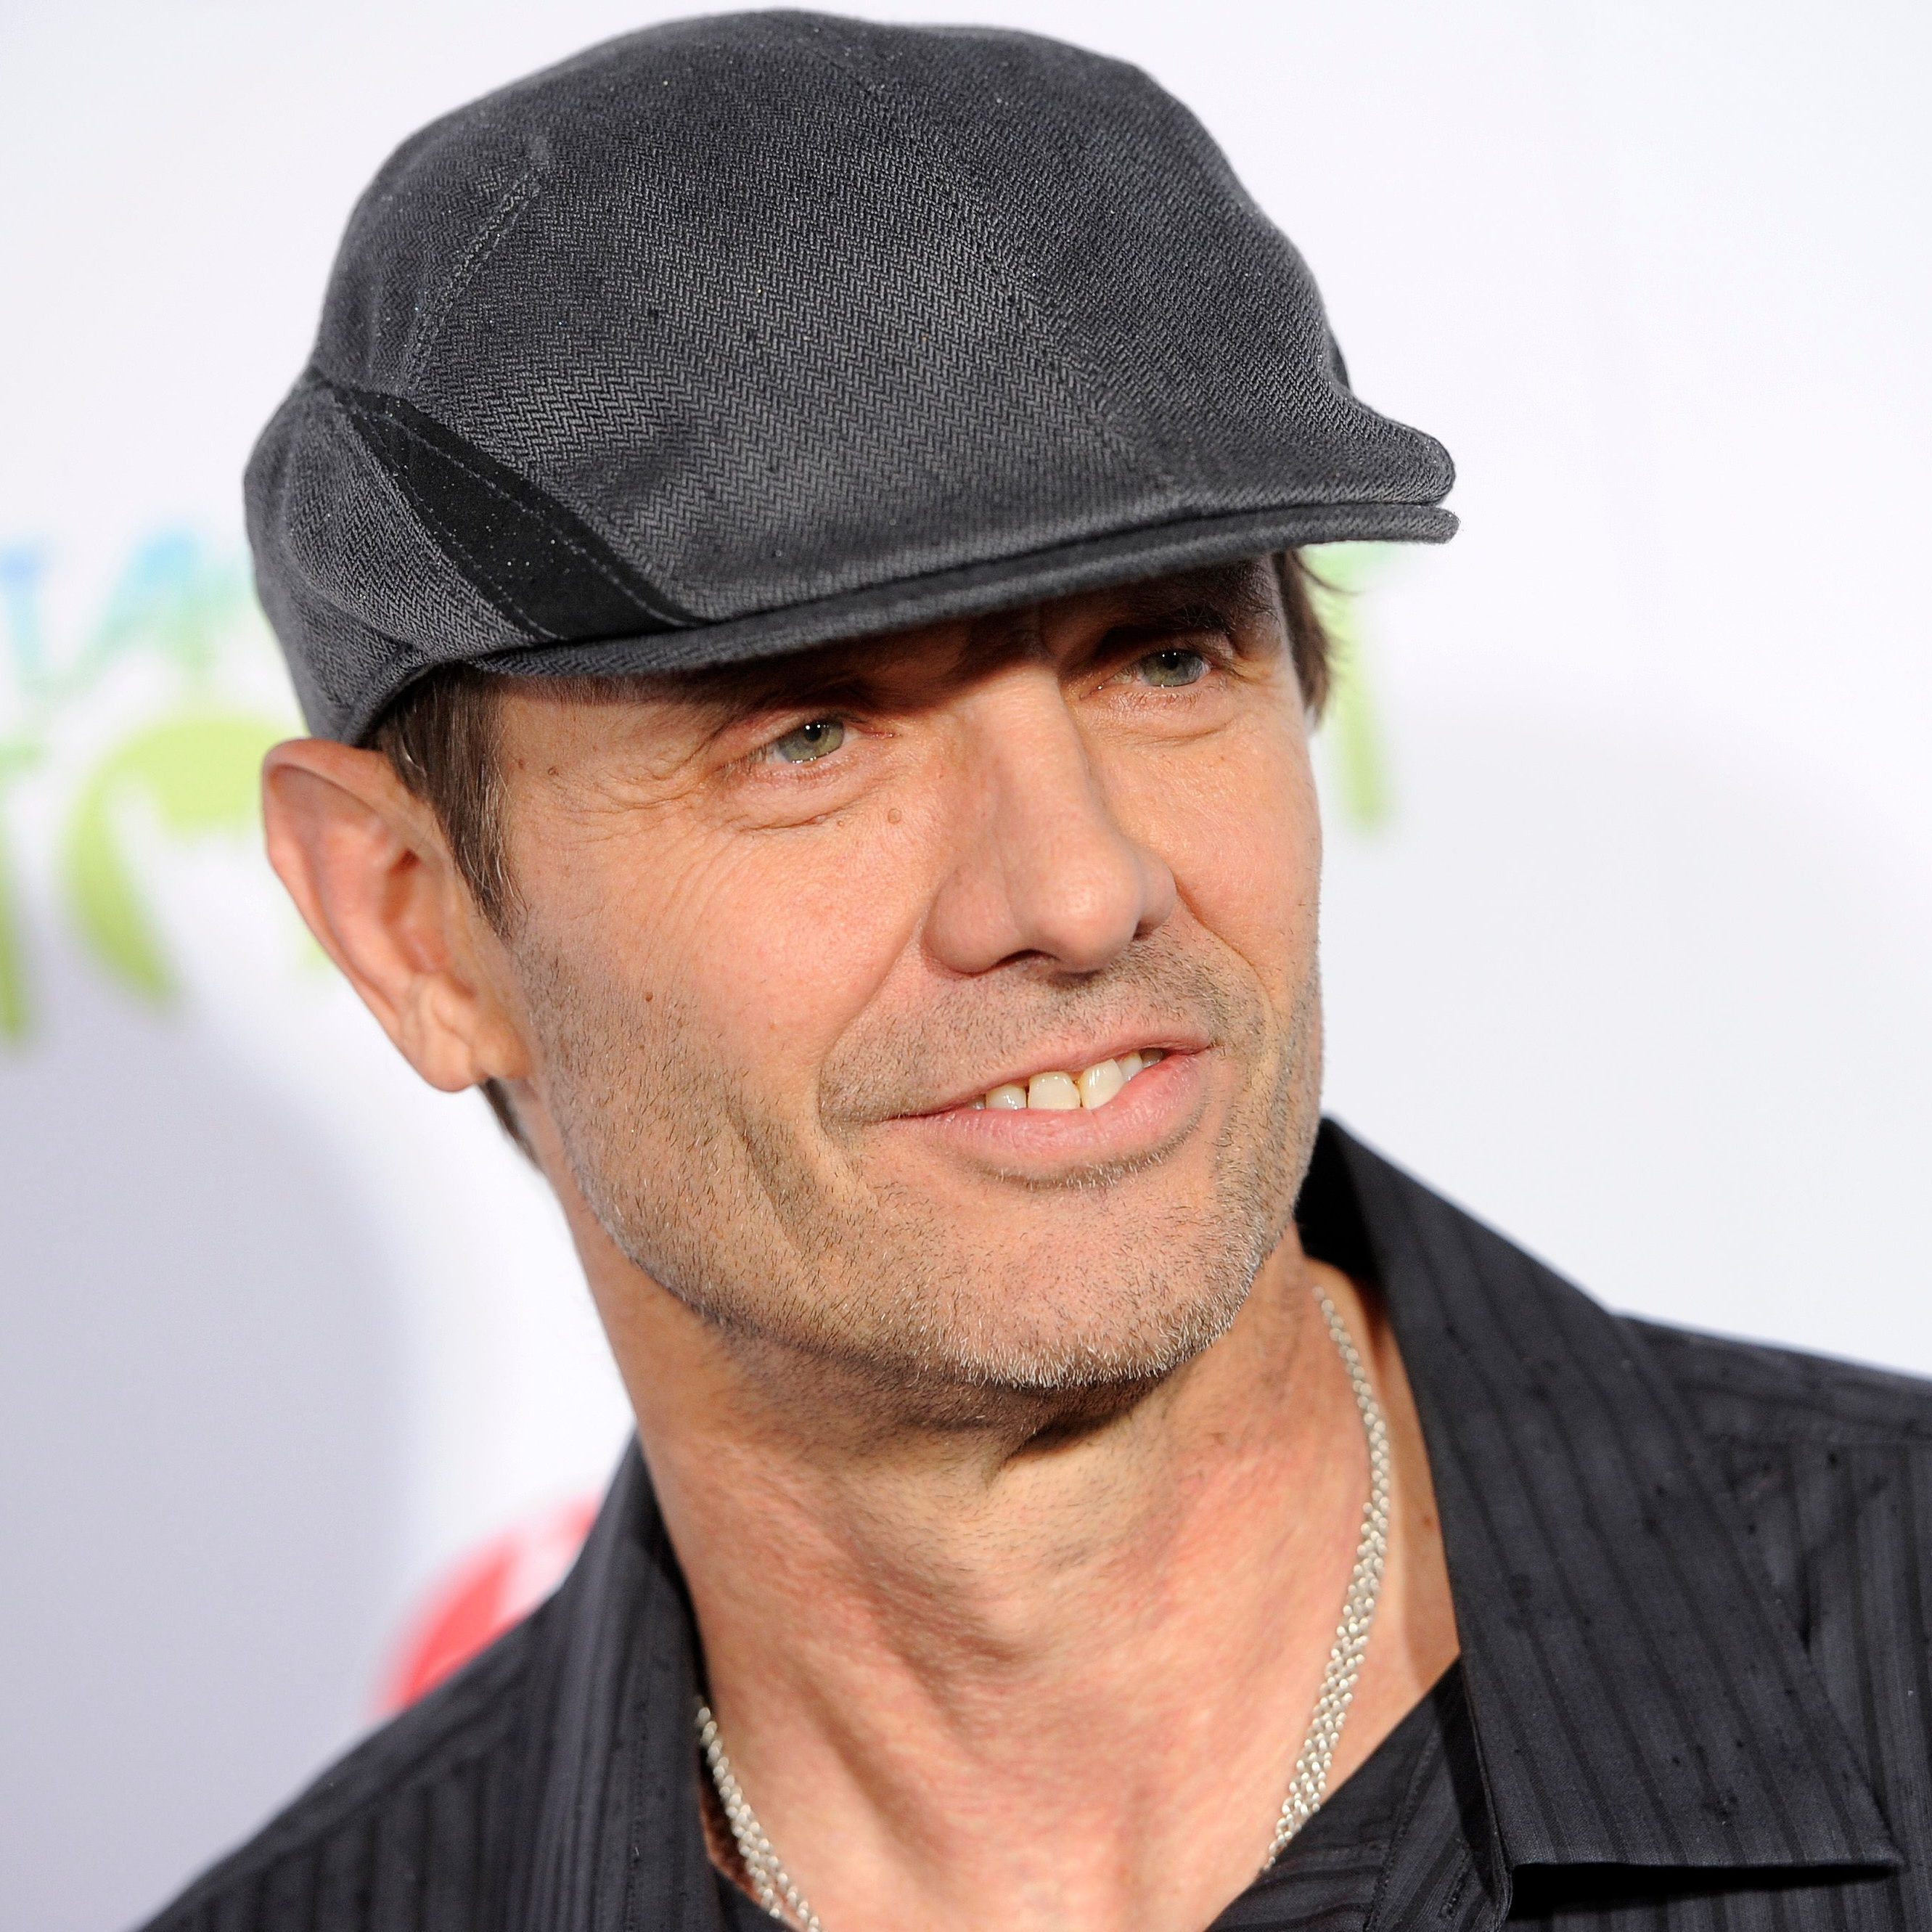 6289492a scaled e1601046081917 20 Things You Never Knew About Michael Biehn